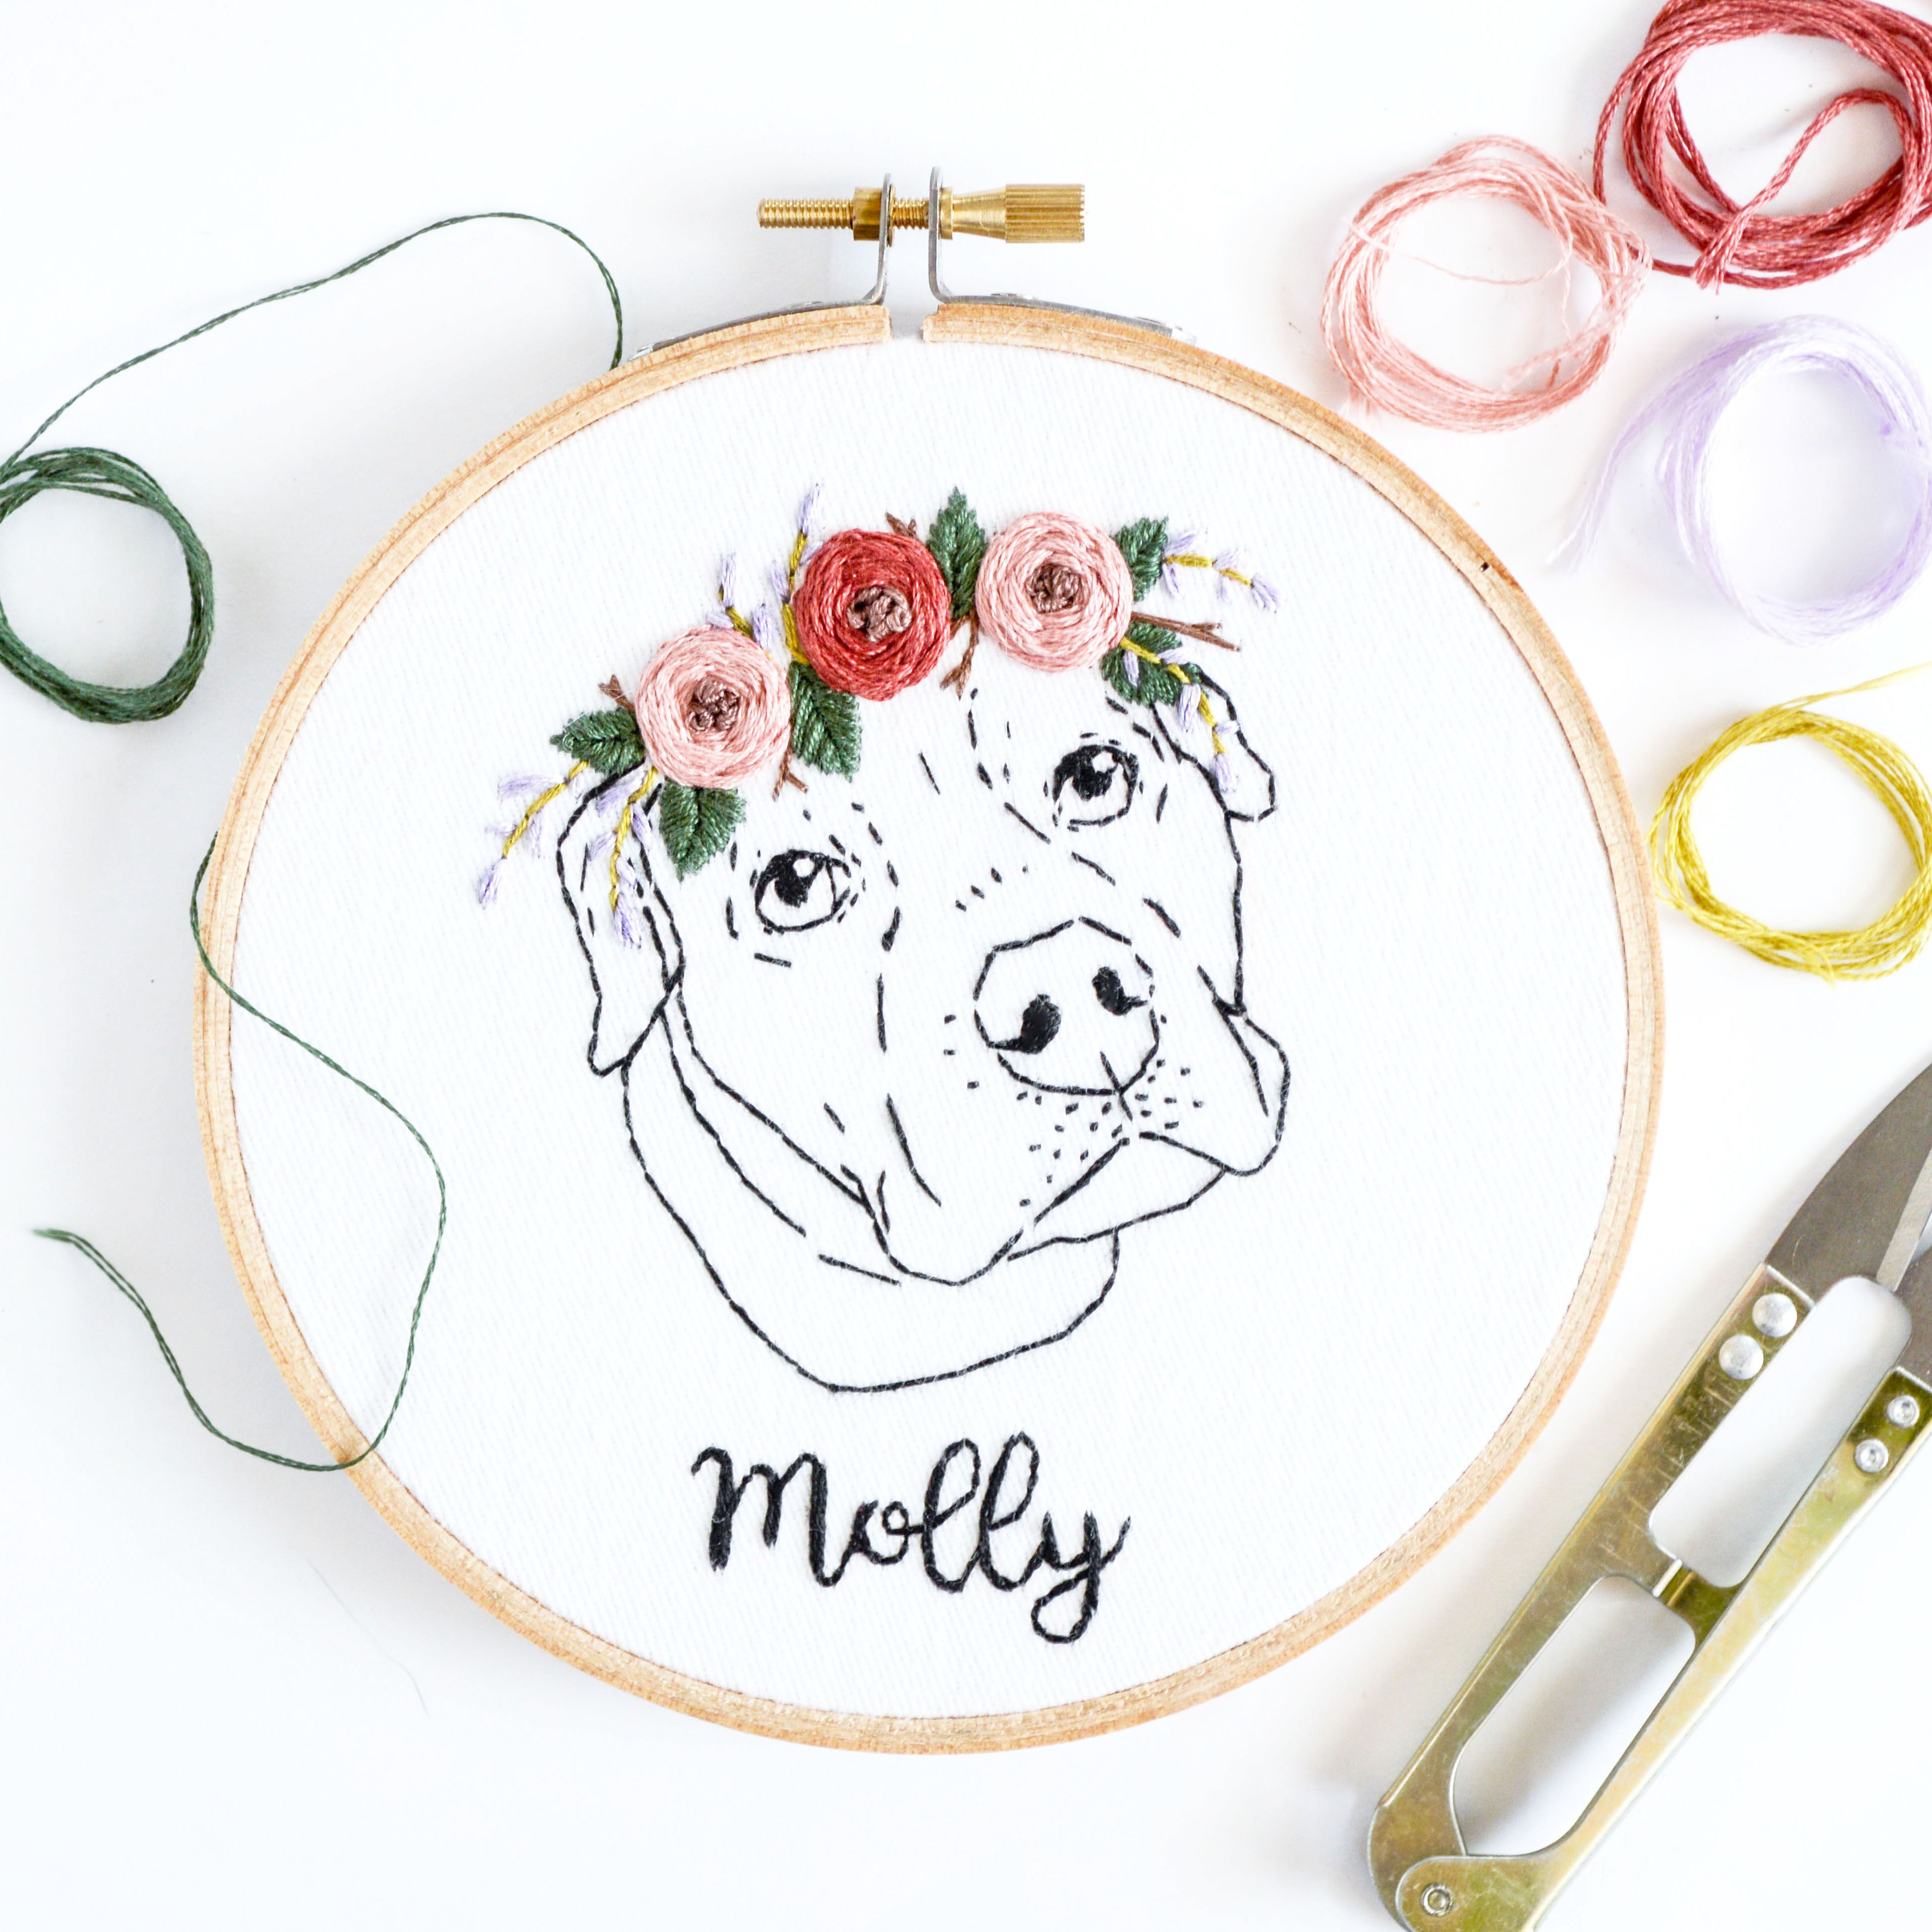 I embroidered a pup recently with some of the most gentle